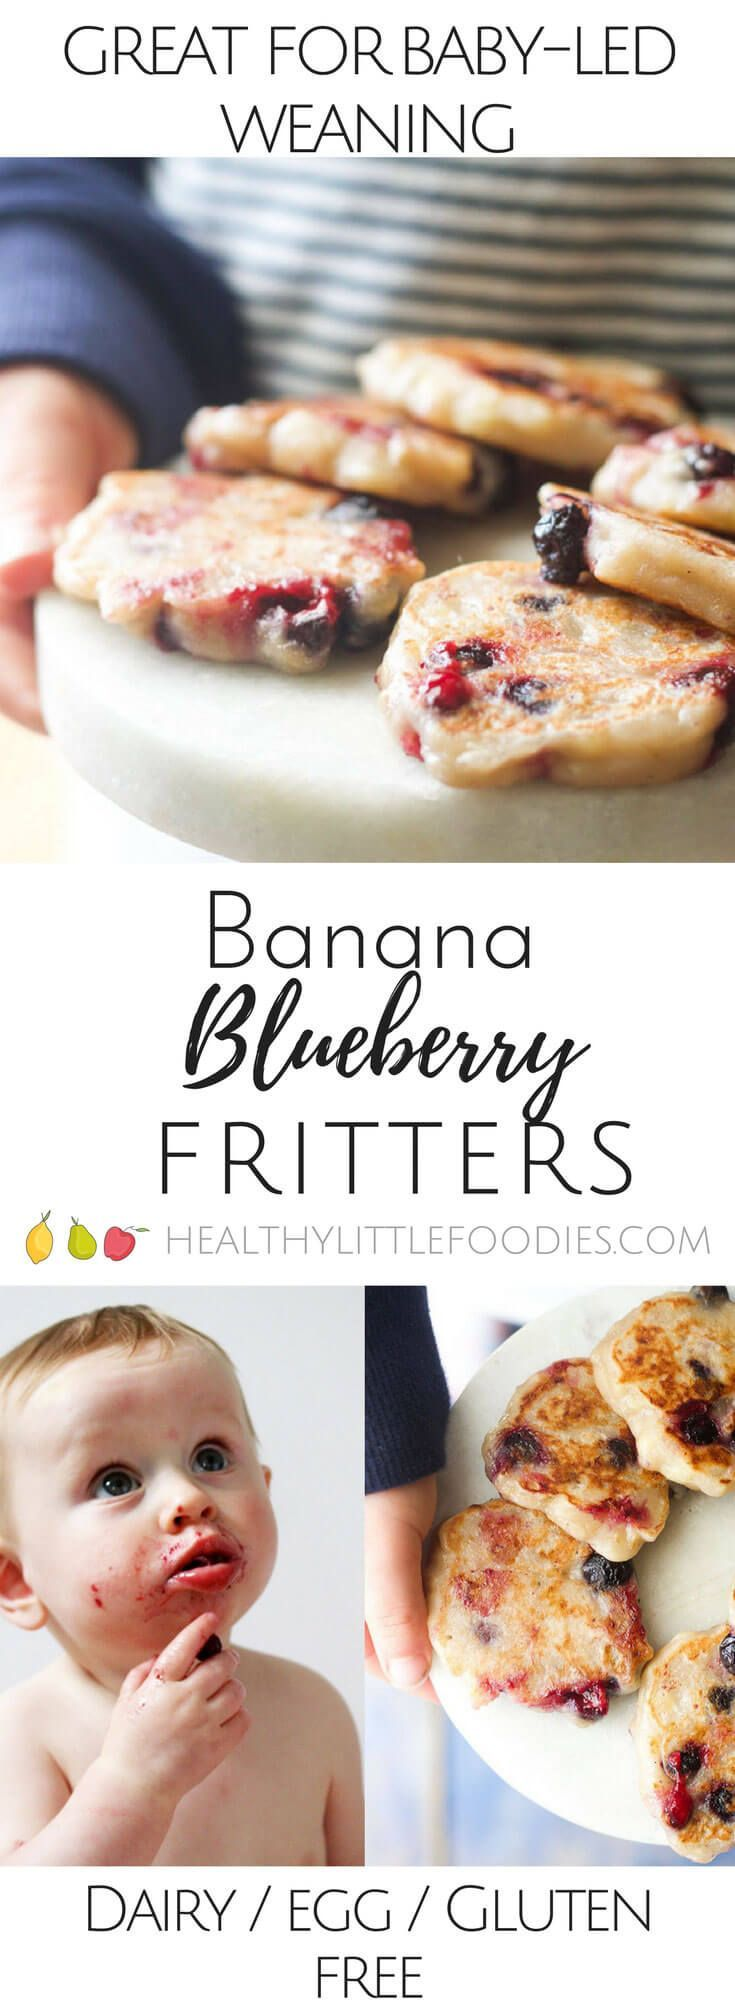 Banana Blueberry Fritters. Only 3 ingredients . Dairy free, gluten free and egg free and no refined sugar. Great for kids and for baby led weaning. via @hlittlefoodies (Ingredients Recipes Dairy Free)